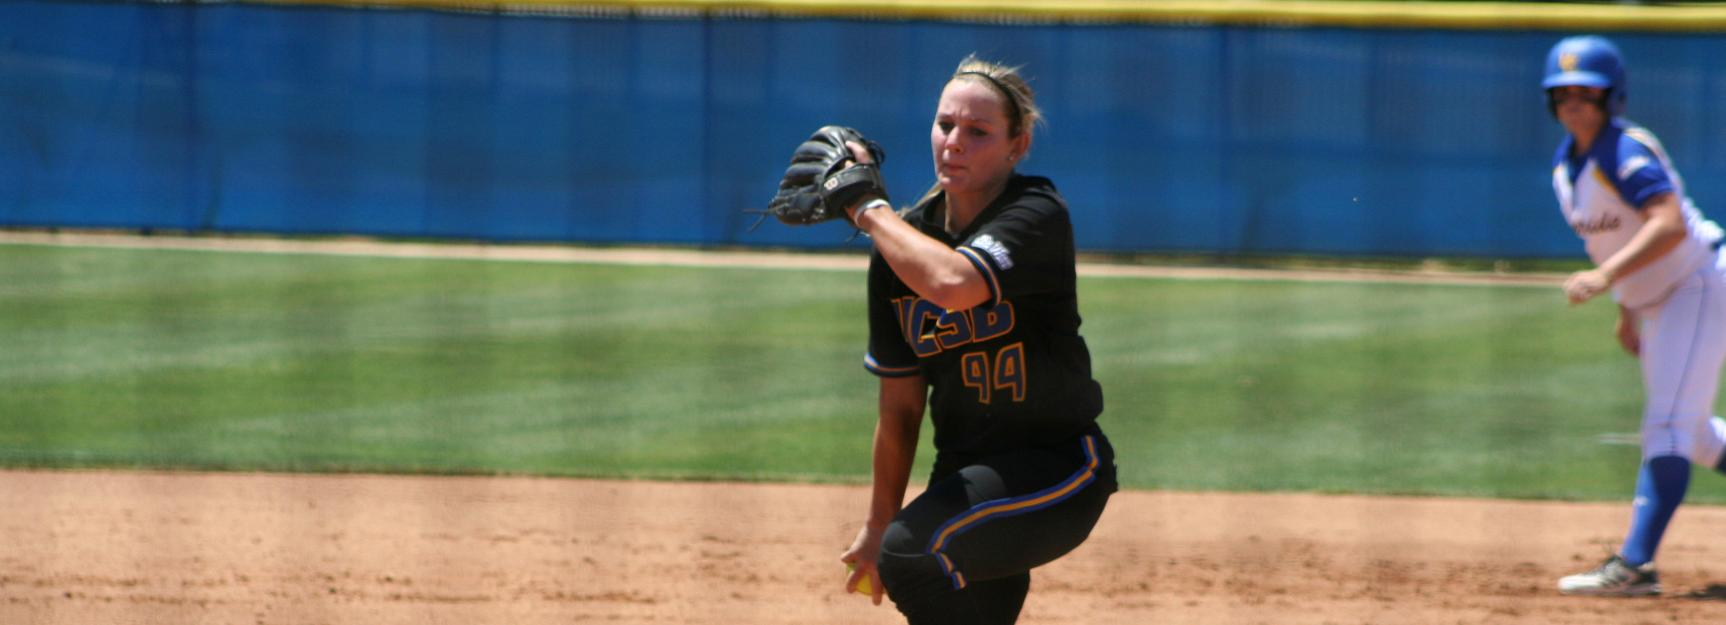 Gauchos Split Doubleheader, Wisdom Sets All-Time Wins Record